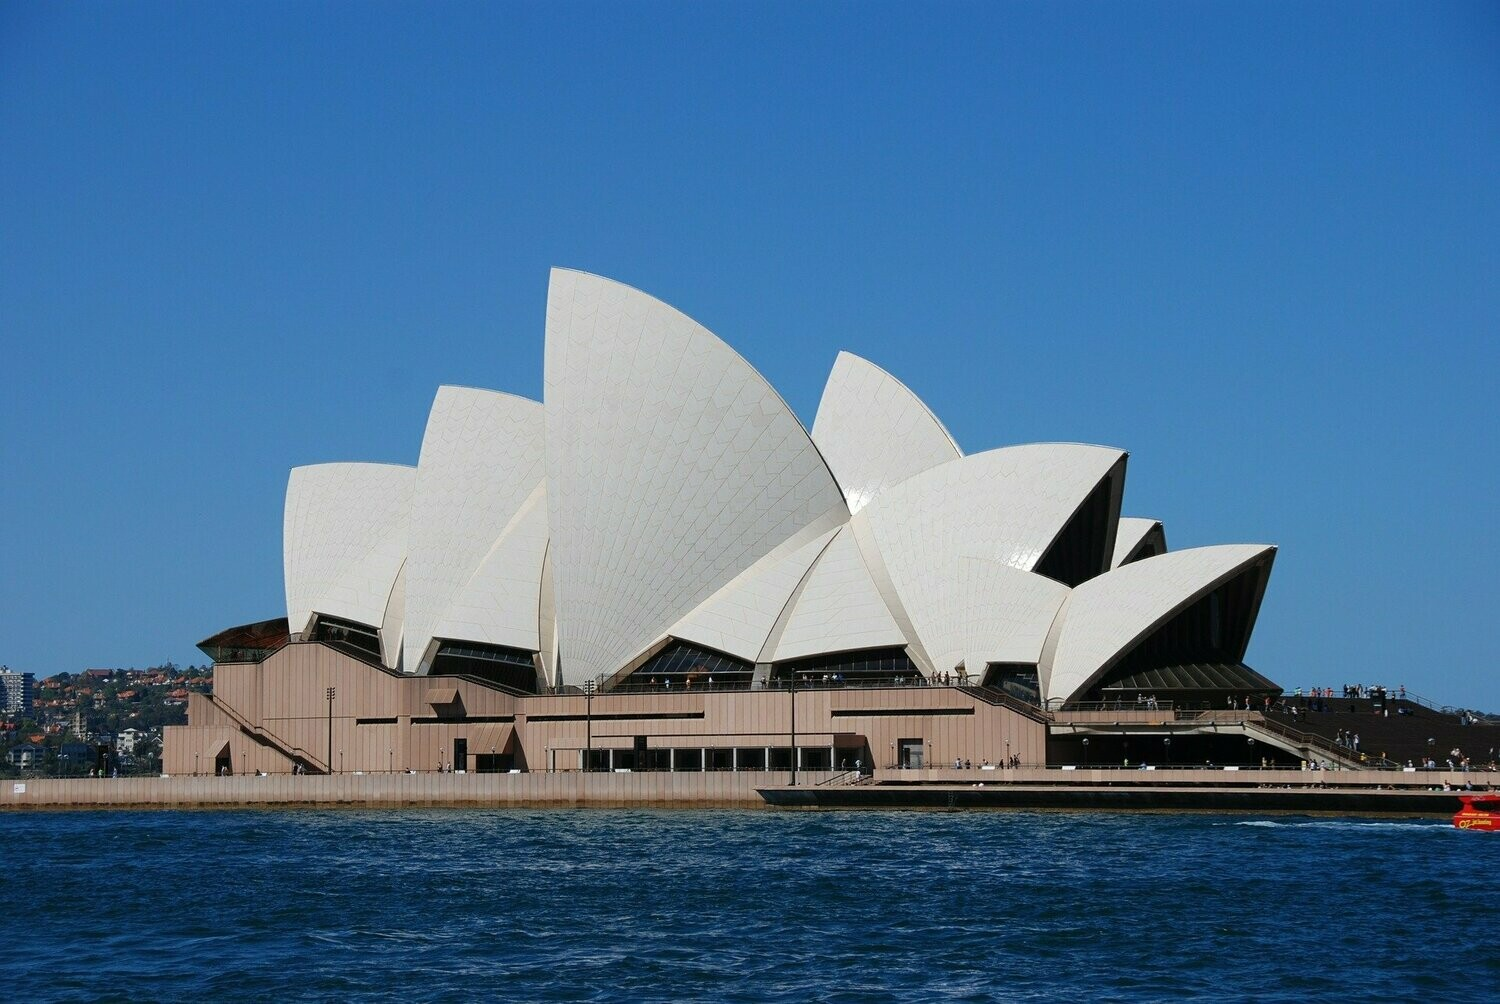 Sydney Opera House - Full Drill Diamond Painting - Specially ordered for you. Delivery is approximately 4 - 6 weeks.